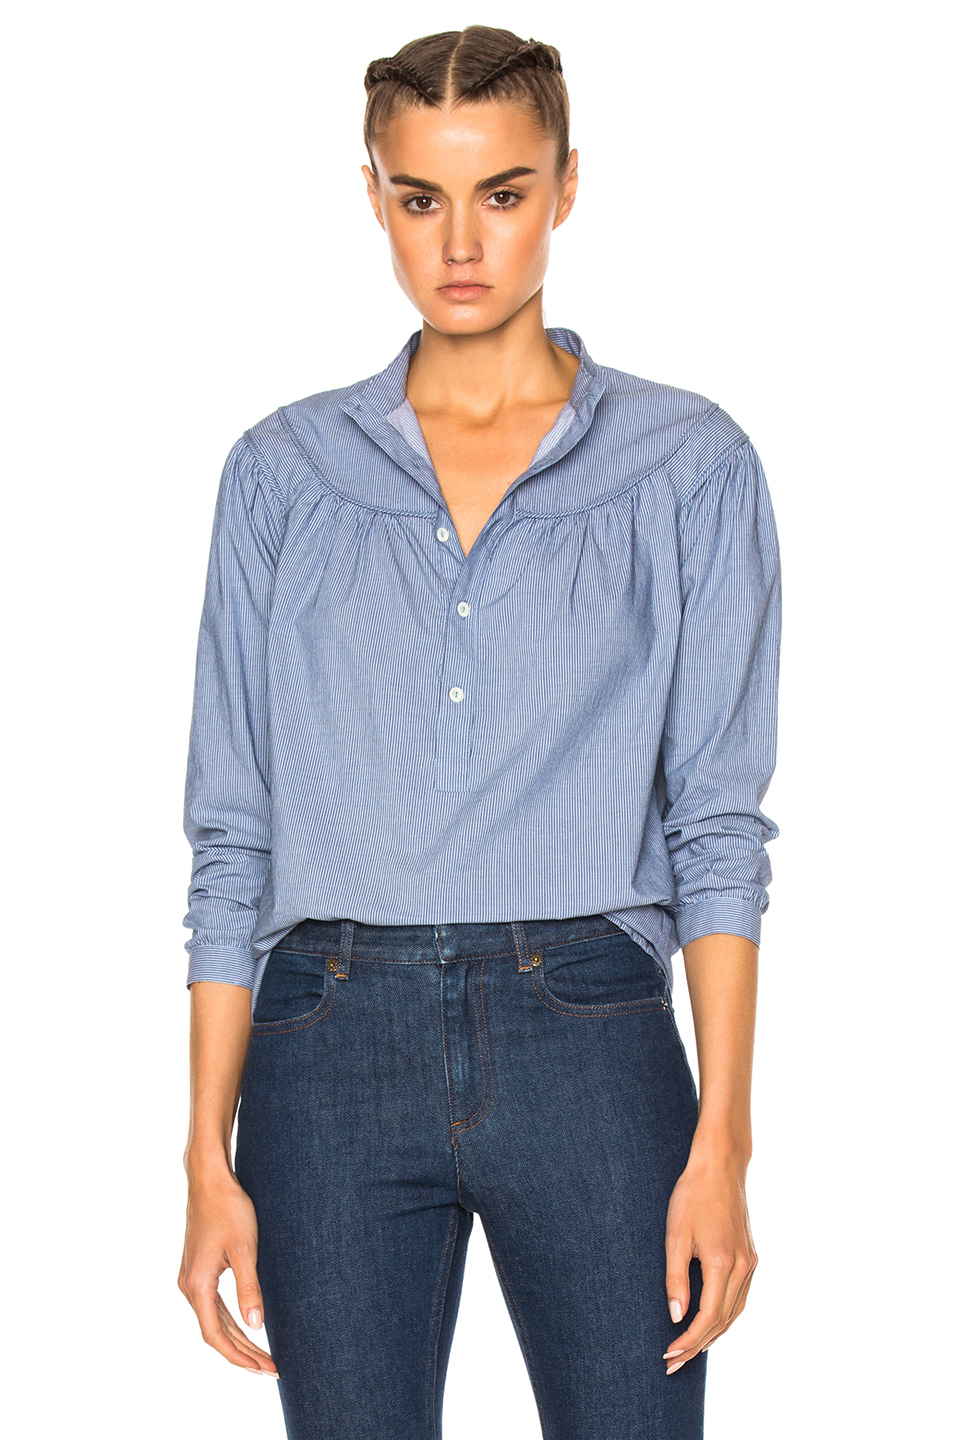 A.P.C. Sally Blouse in Blue,Stripes